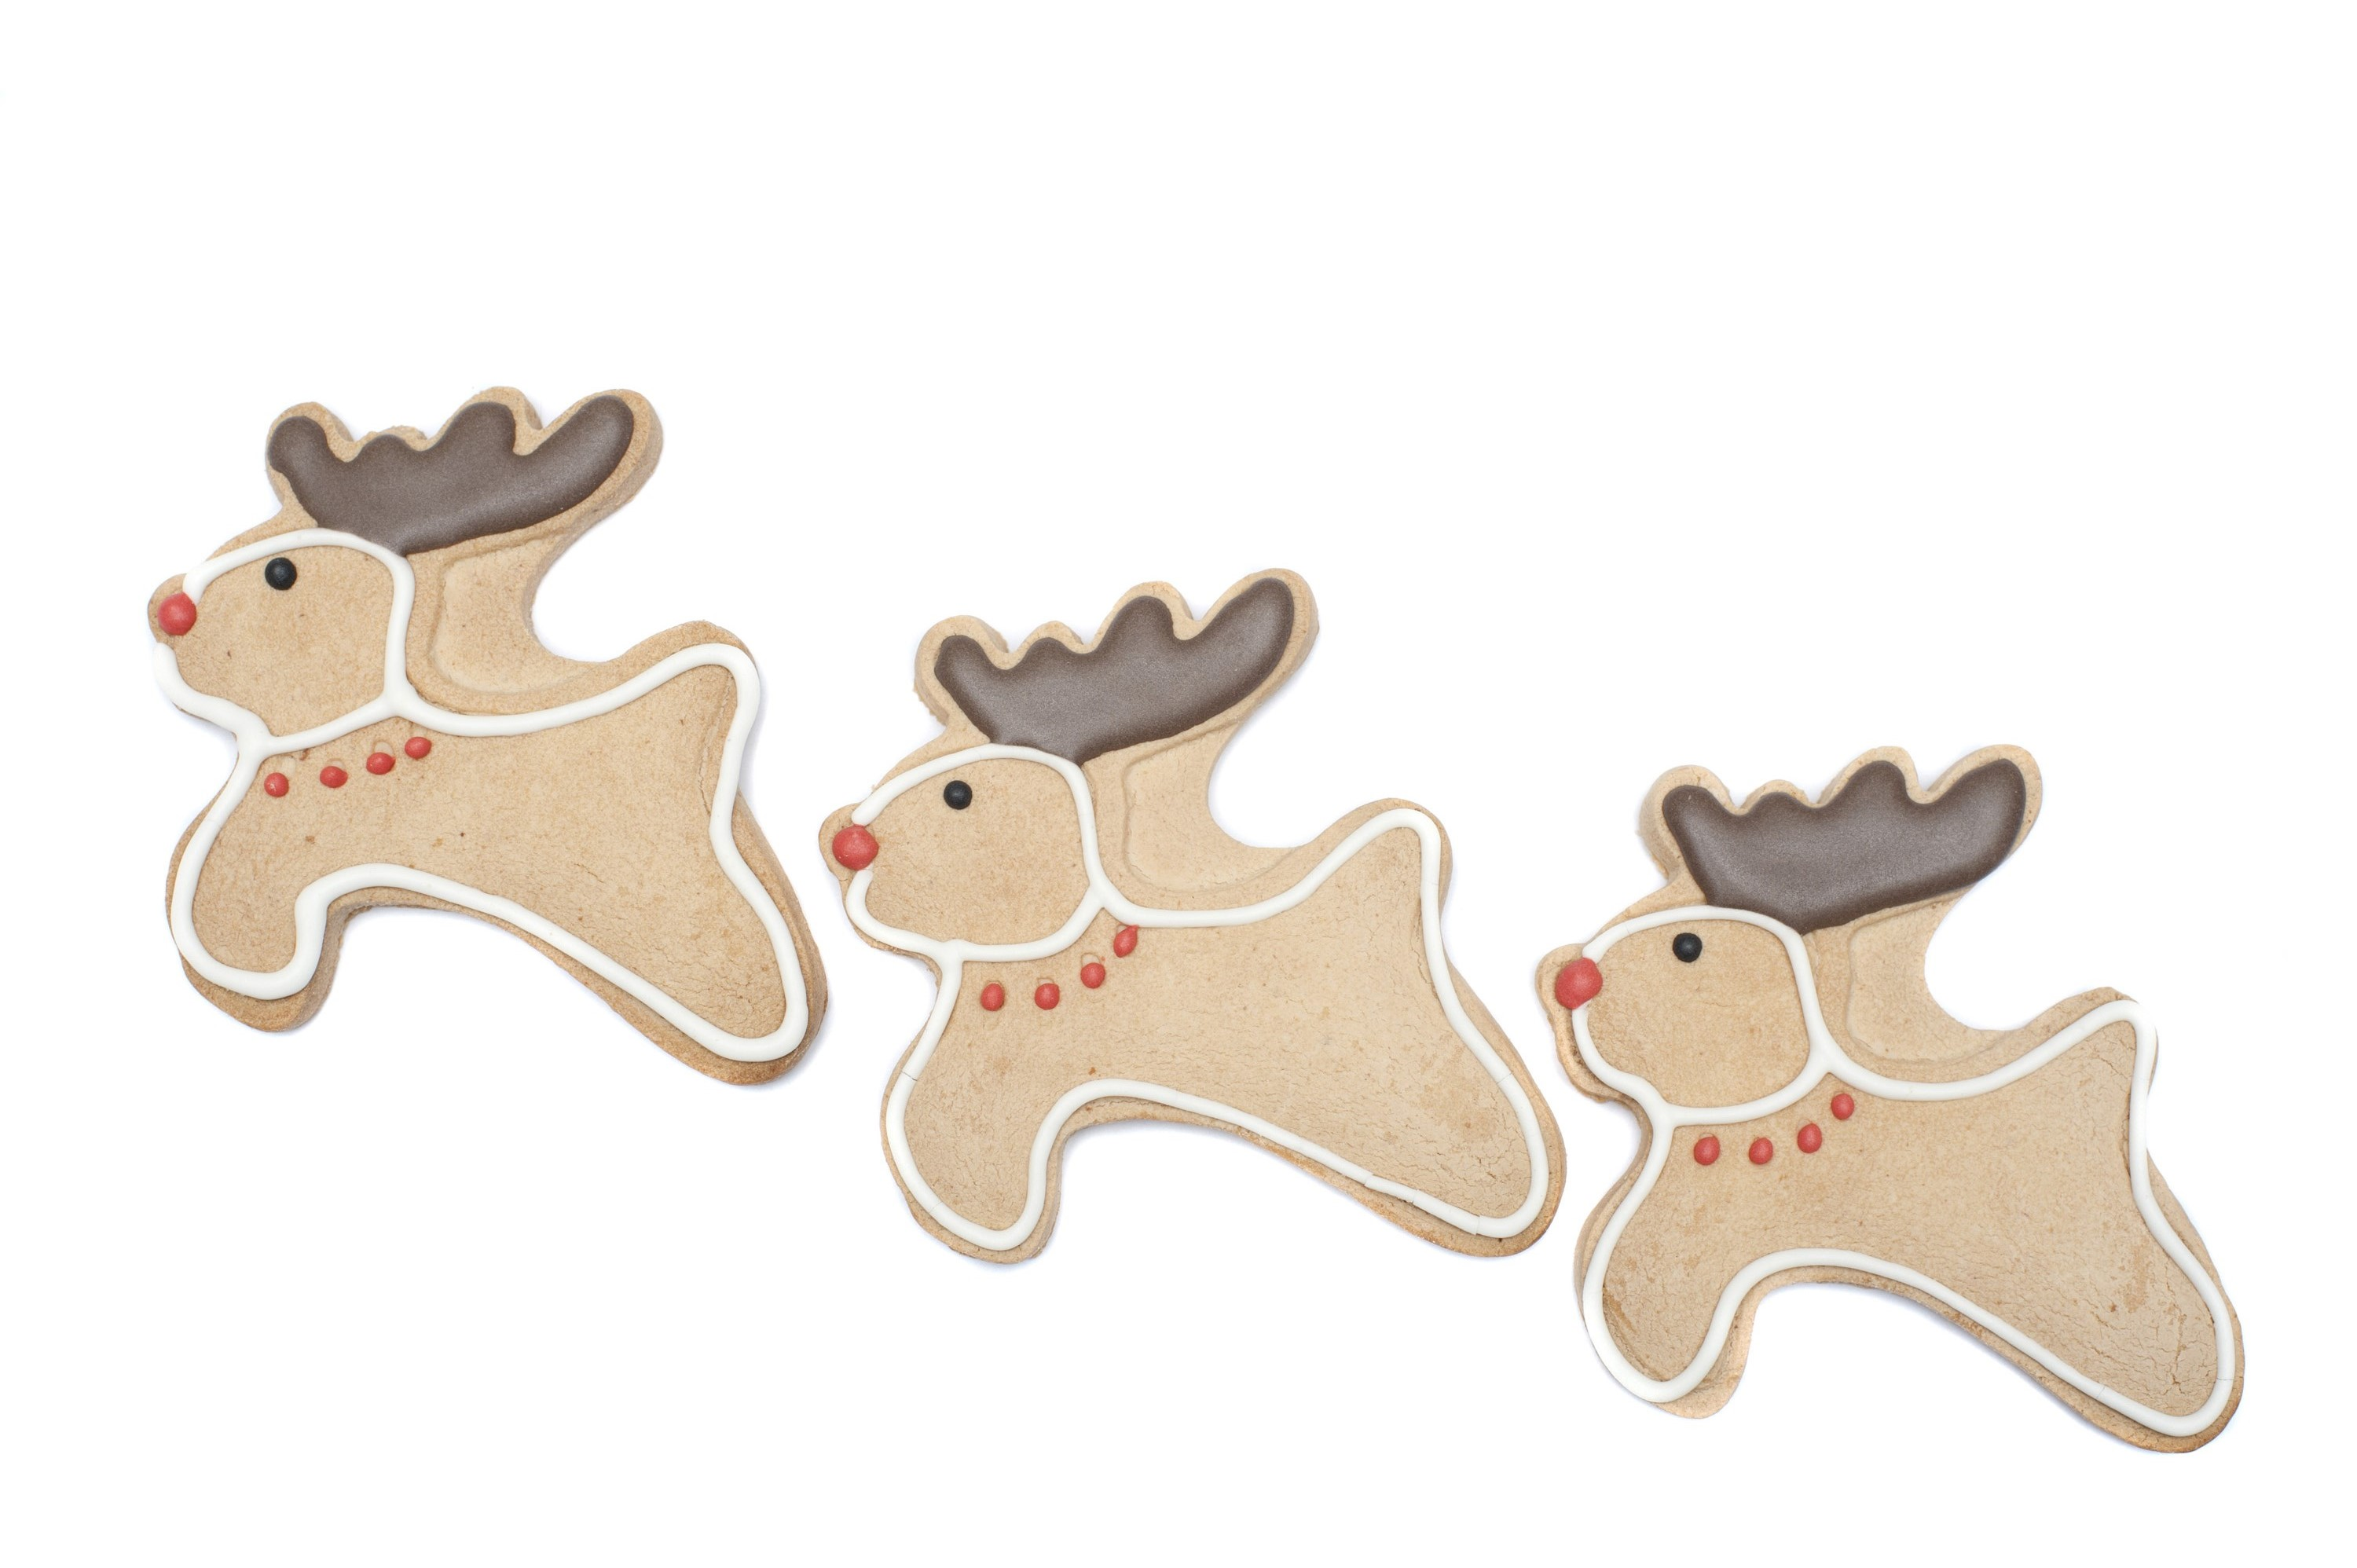 Three Reindeer Christmas Cookies With Cute Little Leaping Deer Red Noses And Chocolate Antlers For